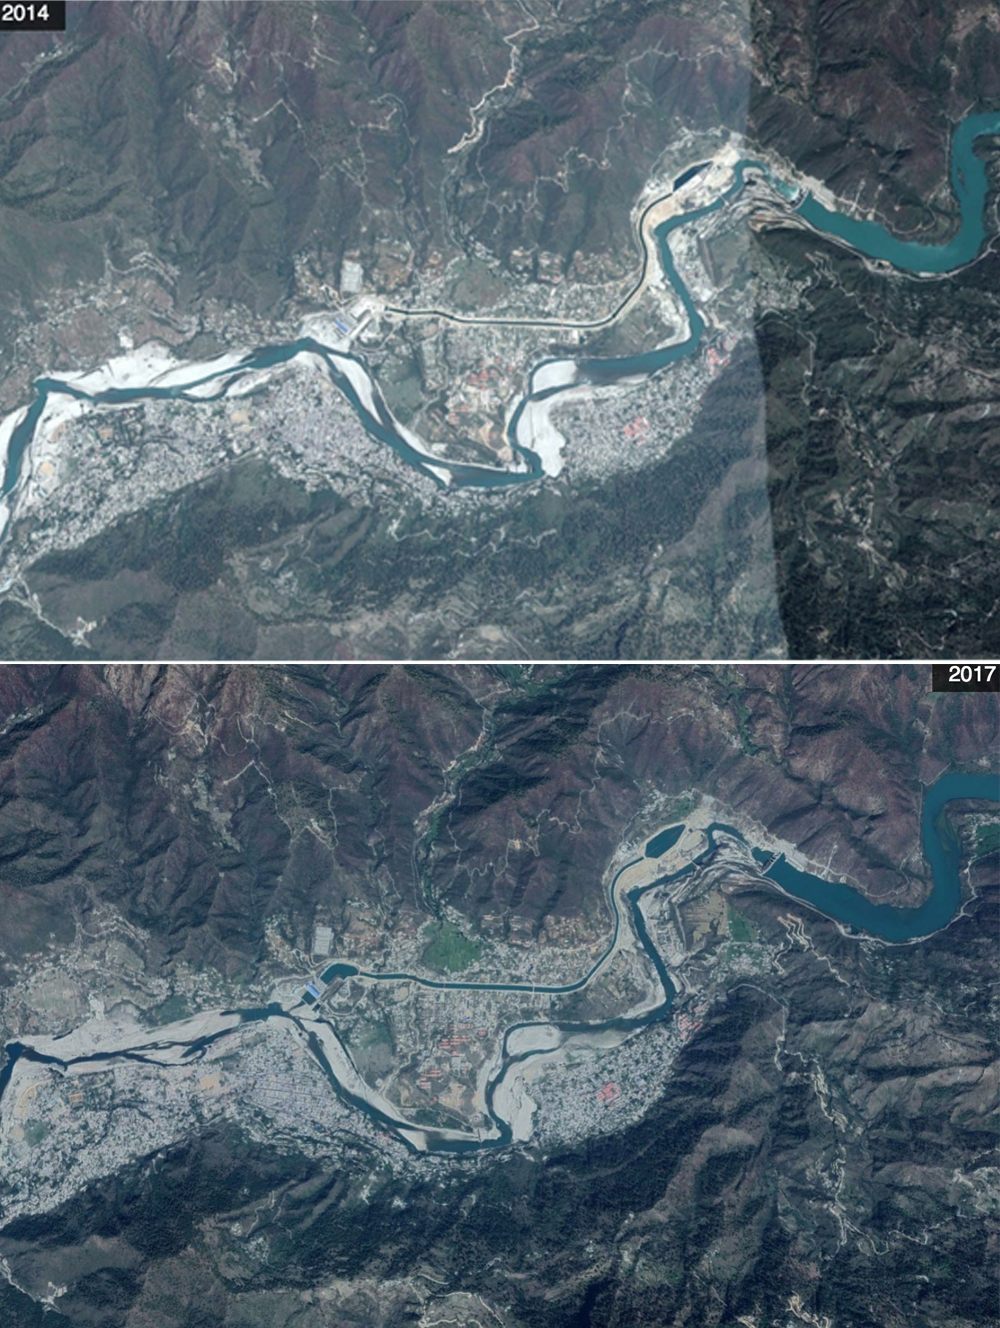 A comparative map of the change in river Alaknanda's flow near Srinagar, Uttarakhand, post the tragedy in 2014 and then in 2017 as the hydroelectric project continues to function. Credit: Google Maps